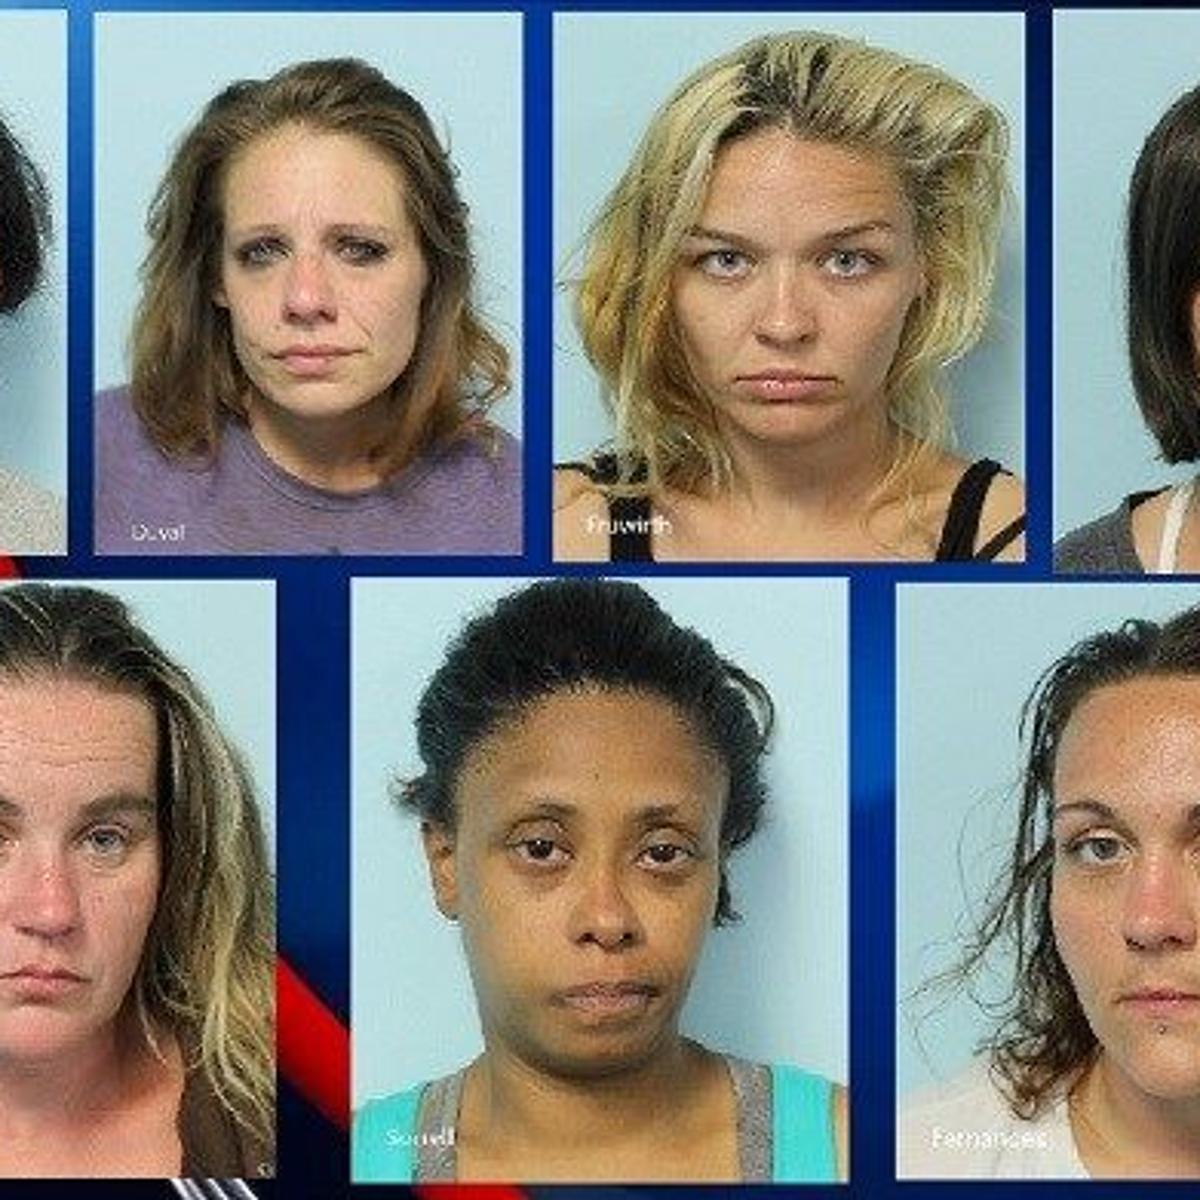 Springfield Ma Escorts >> Pd Seven Women Arrested For Prostitution In Springfield